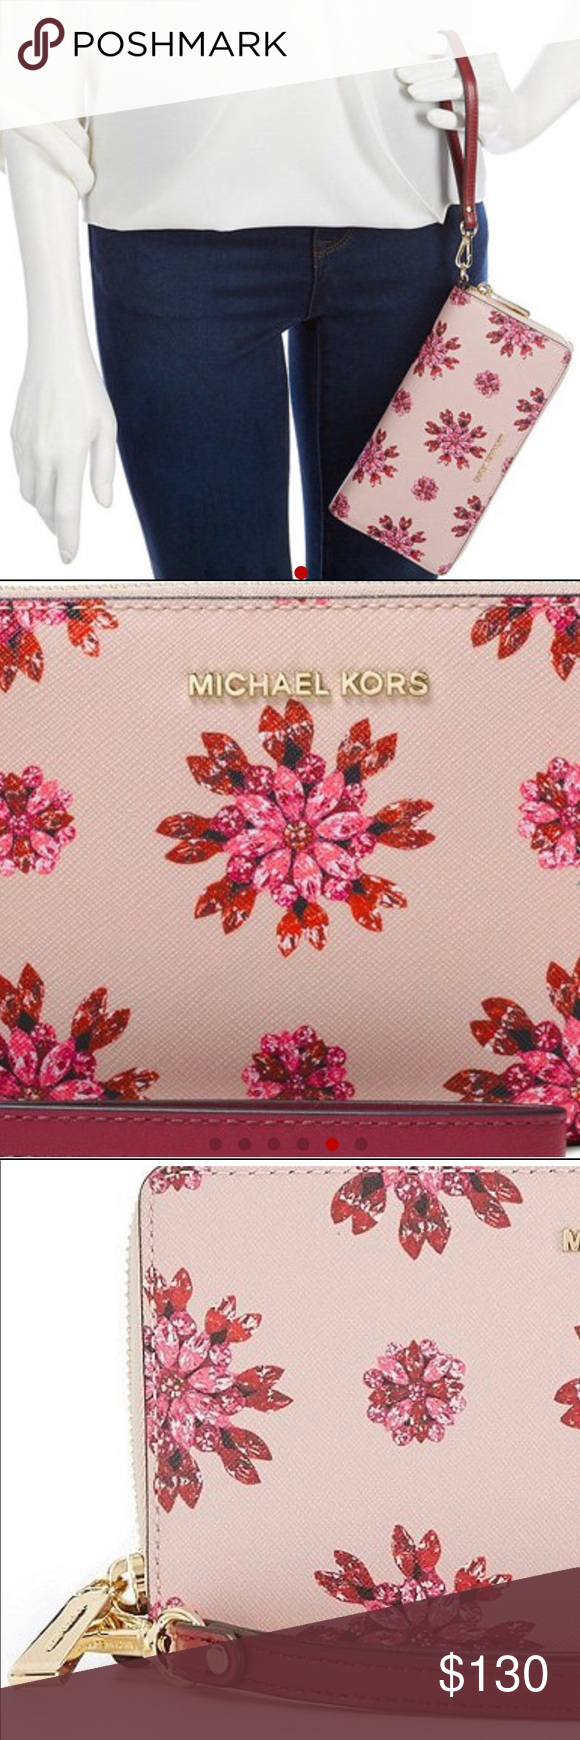 f0b006a2dd2f Michael Kors Travel Continental Wallet soft pink Michael Kors Soft Pink Ultra  Pink Jet Set Floral Jewel Travel Continental Wallet 8.25…